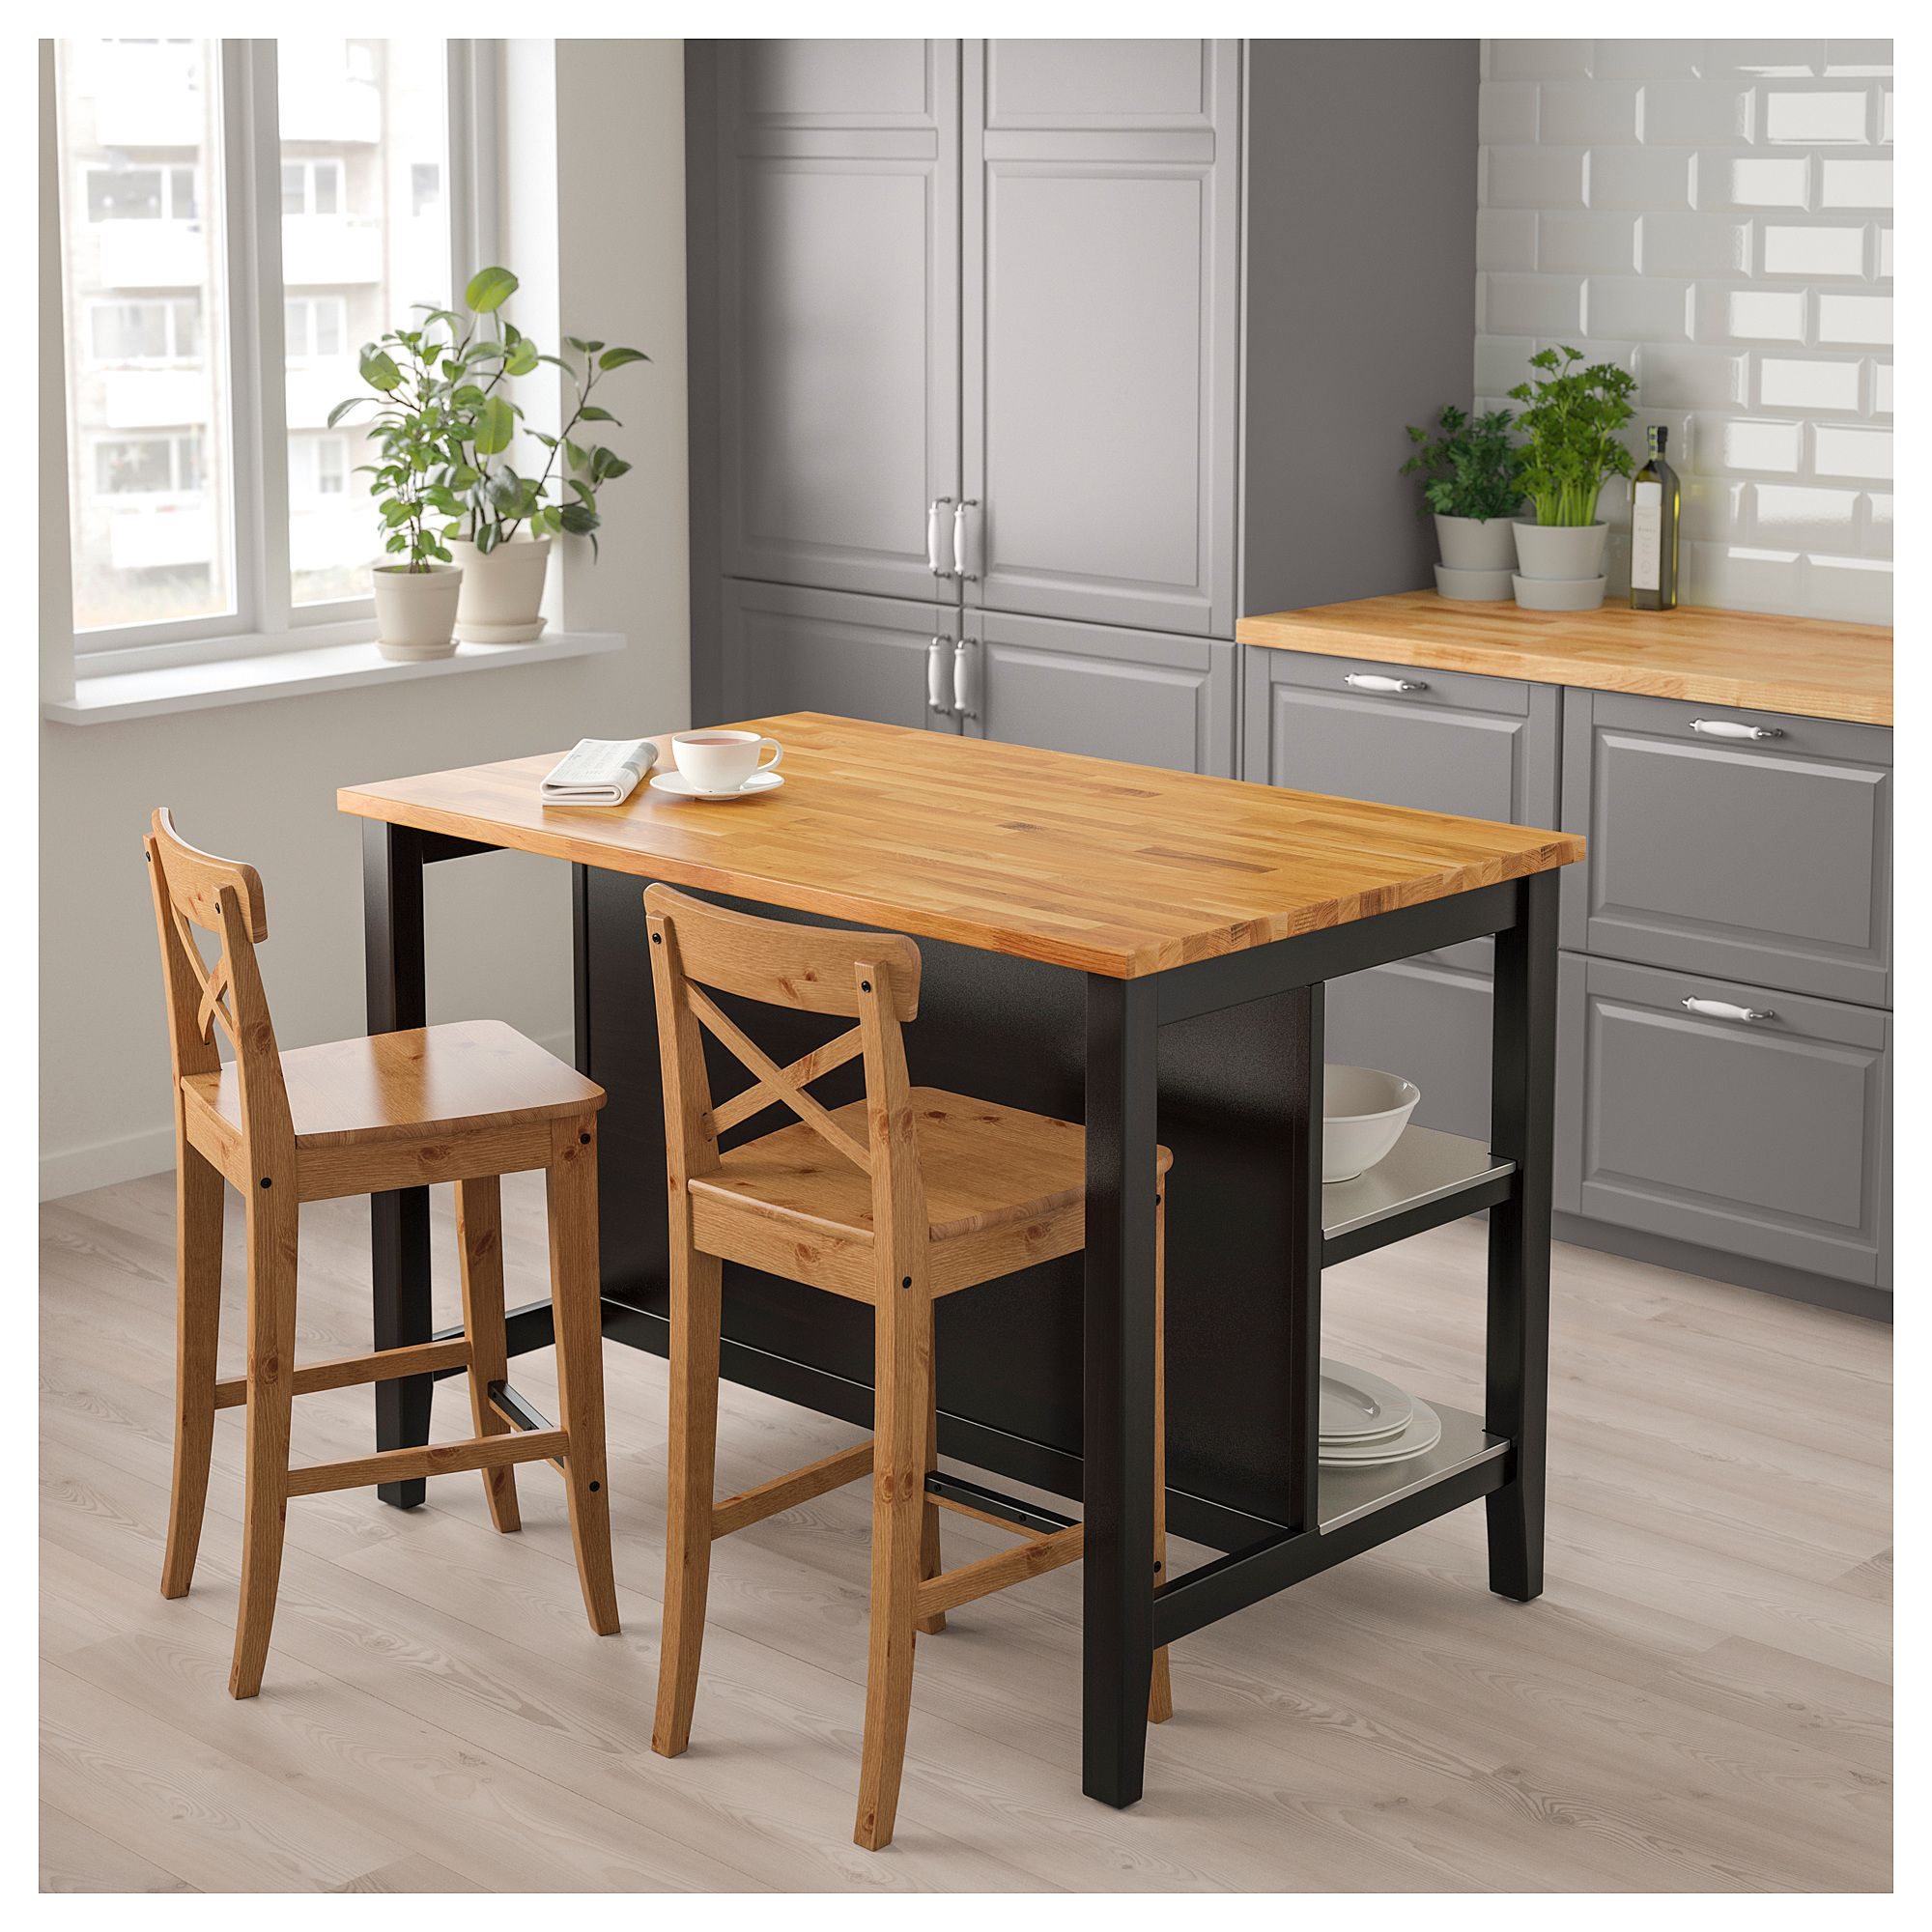 Ikea Ilot Cuisine: STENSTORP Kitchen Island Black-brown, Oak